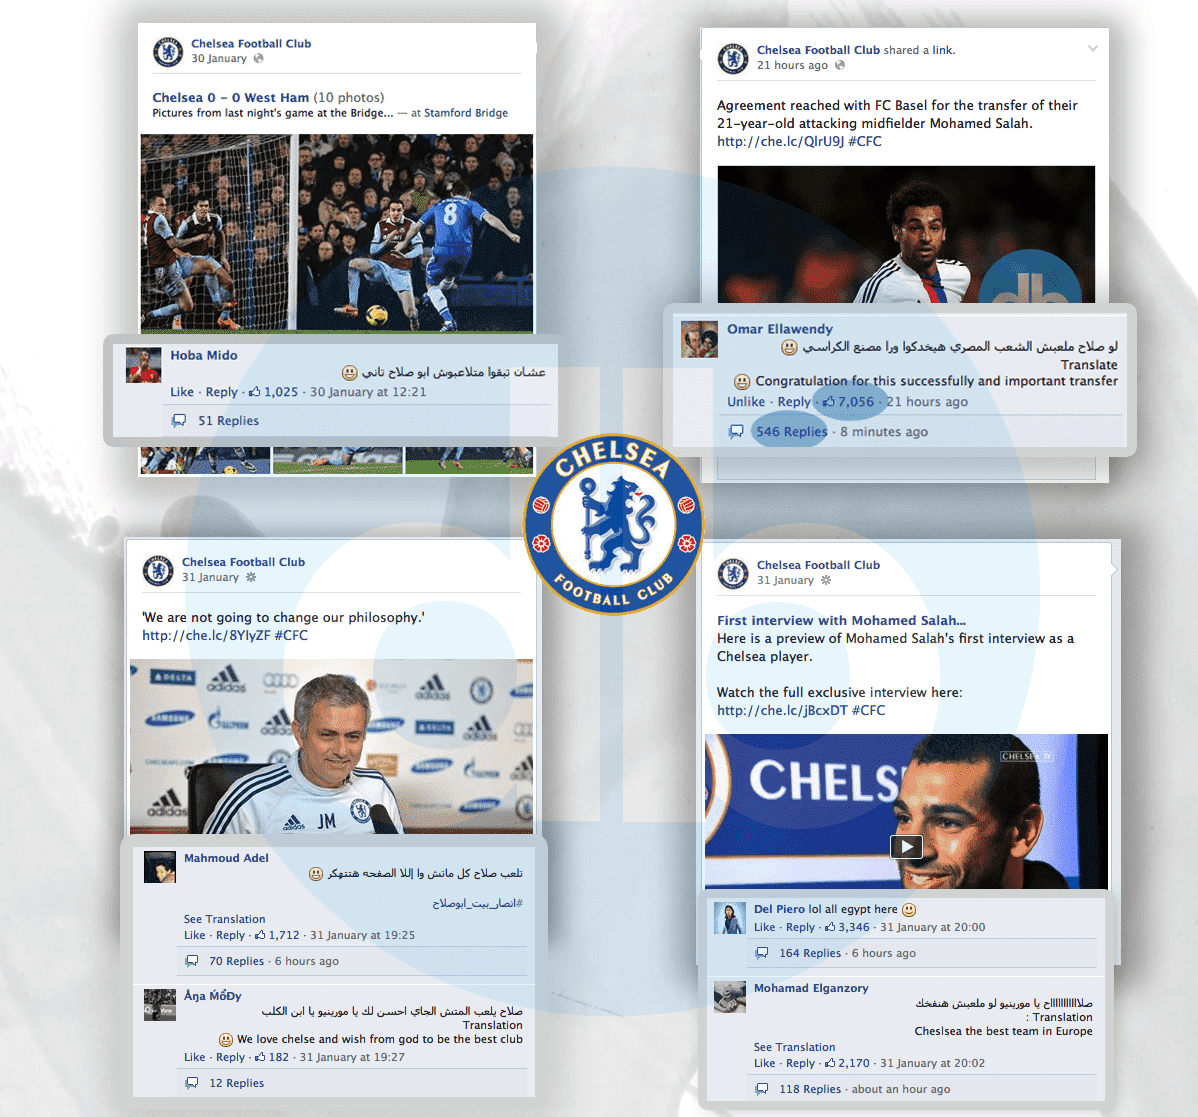 chelsea facebook page, Mohamed Salah impact on Chelsea